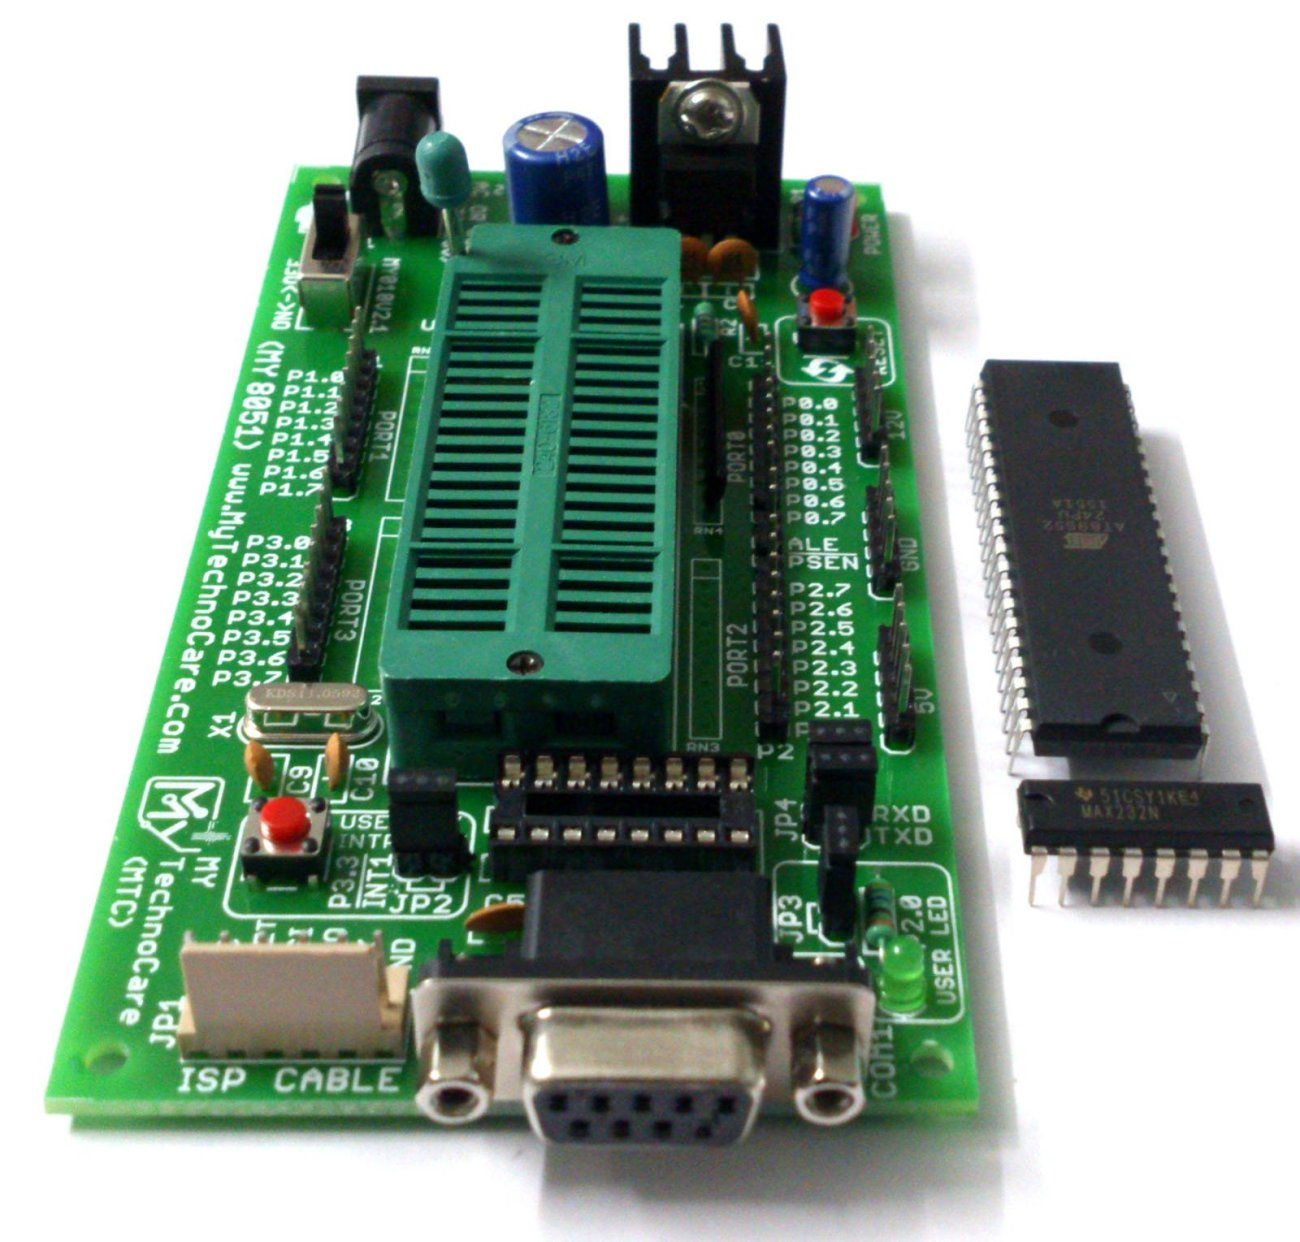 8051 Microcontroller Board With Zif Socket